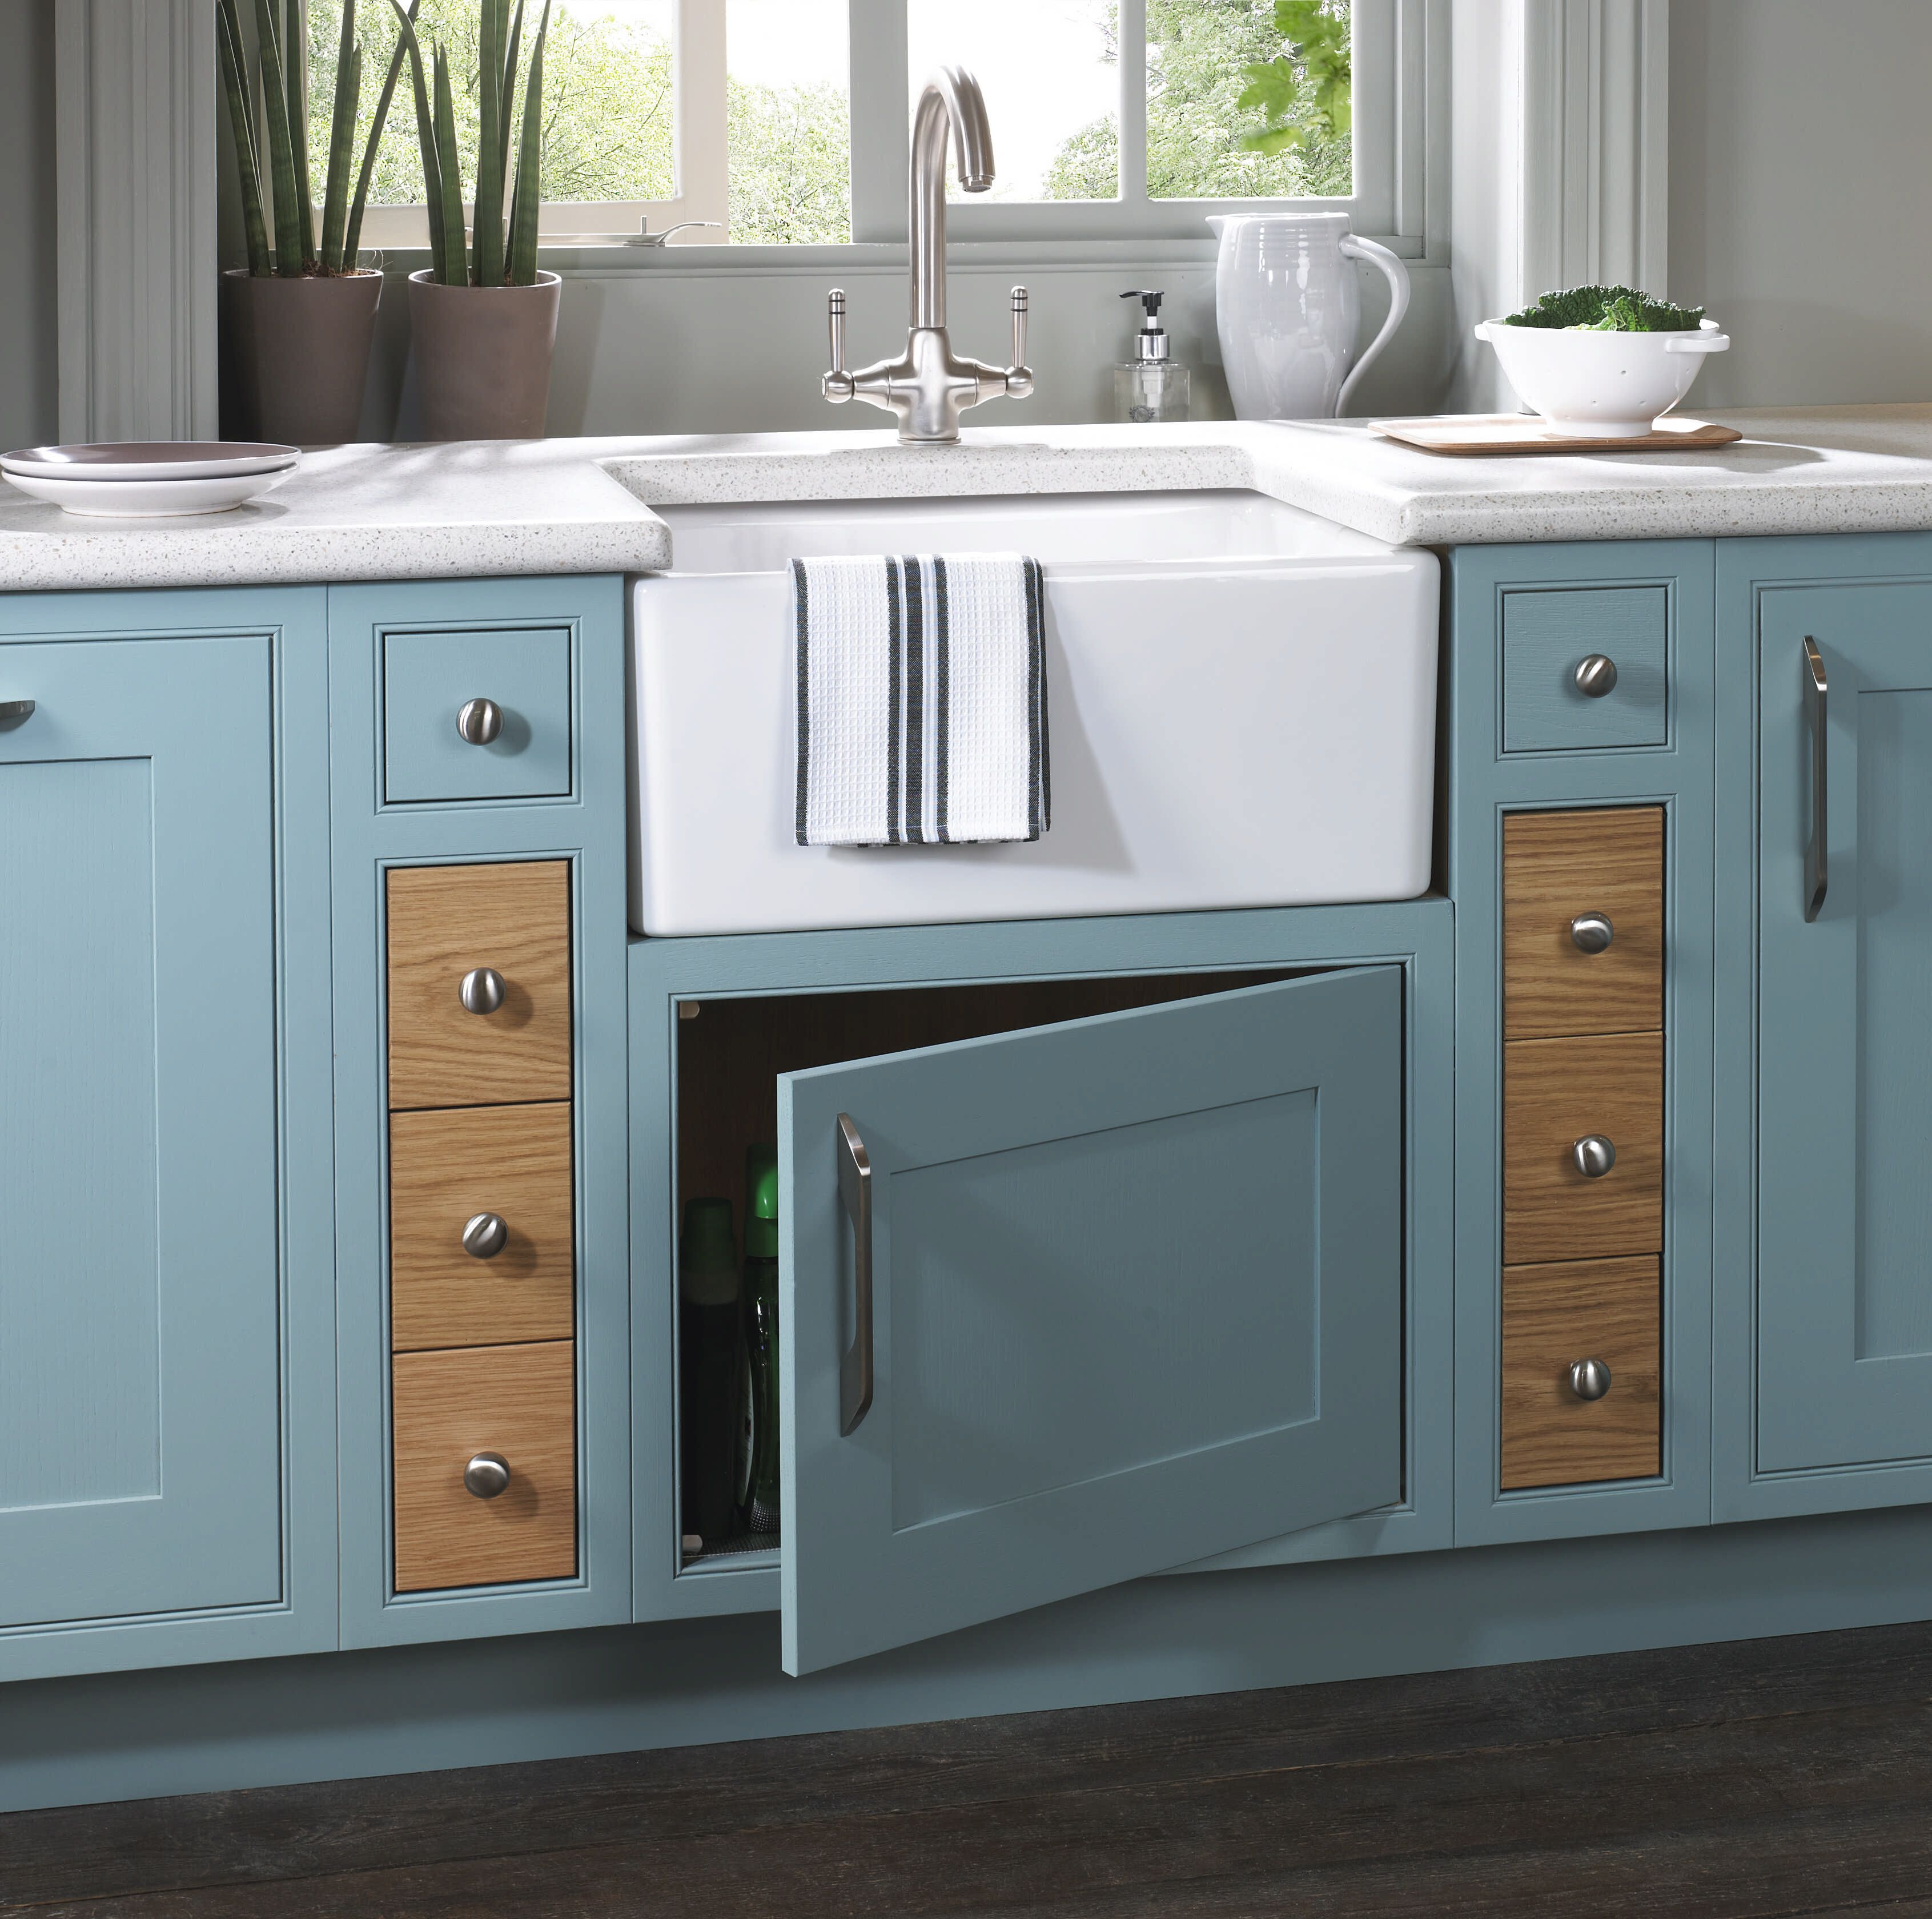 stunning cobalt blue colour doors in the english revival range with